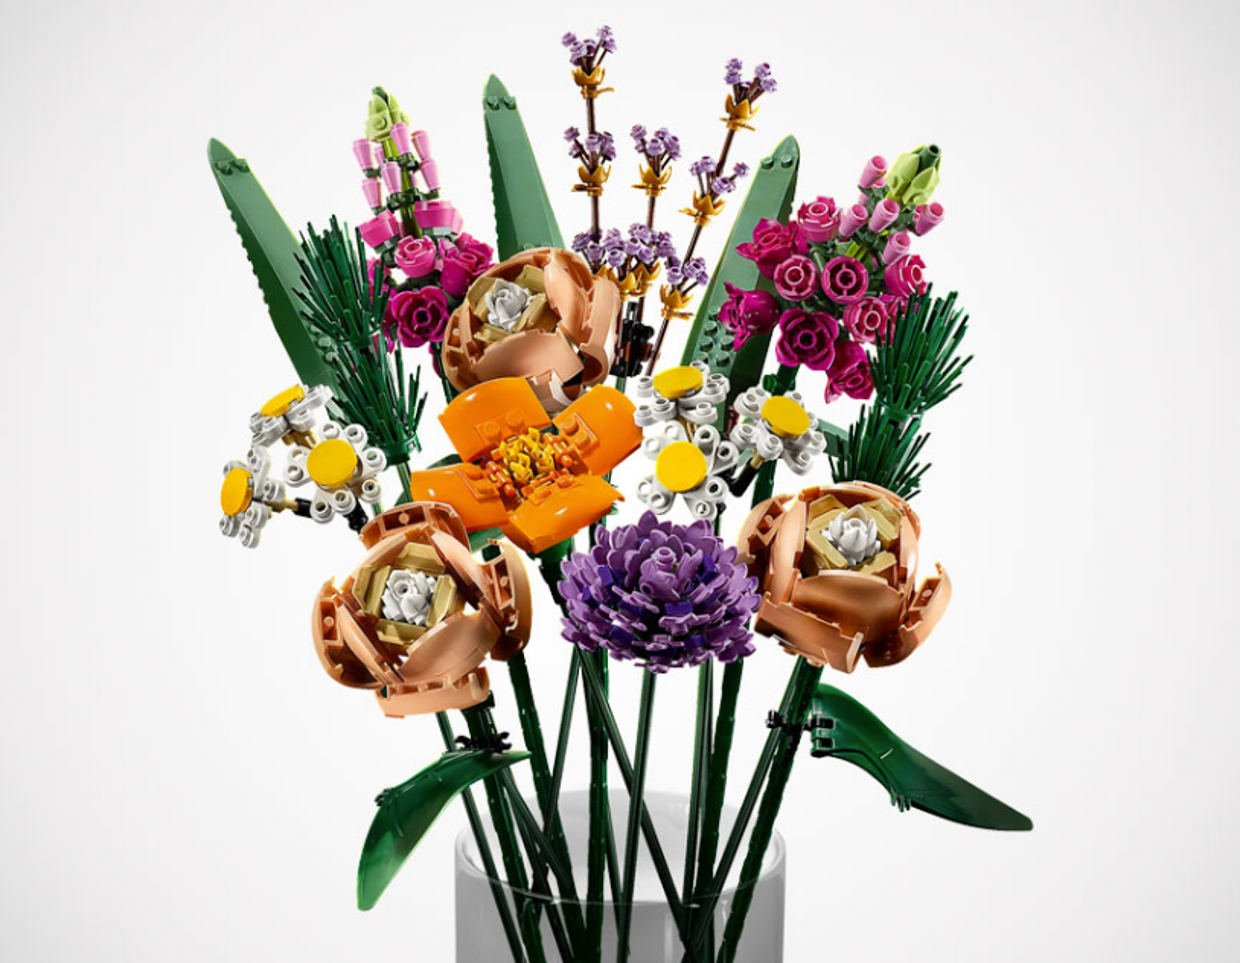 LEGOs Realistic Flower Bouquet Set: Stop and Smell the